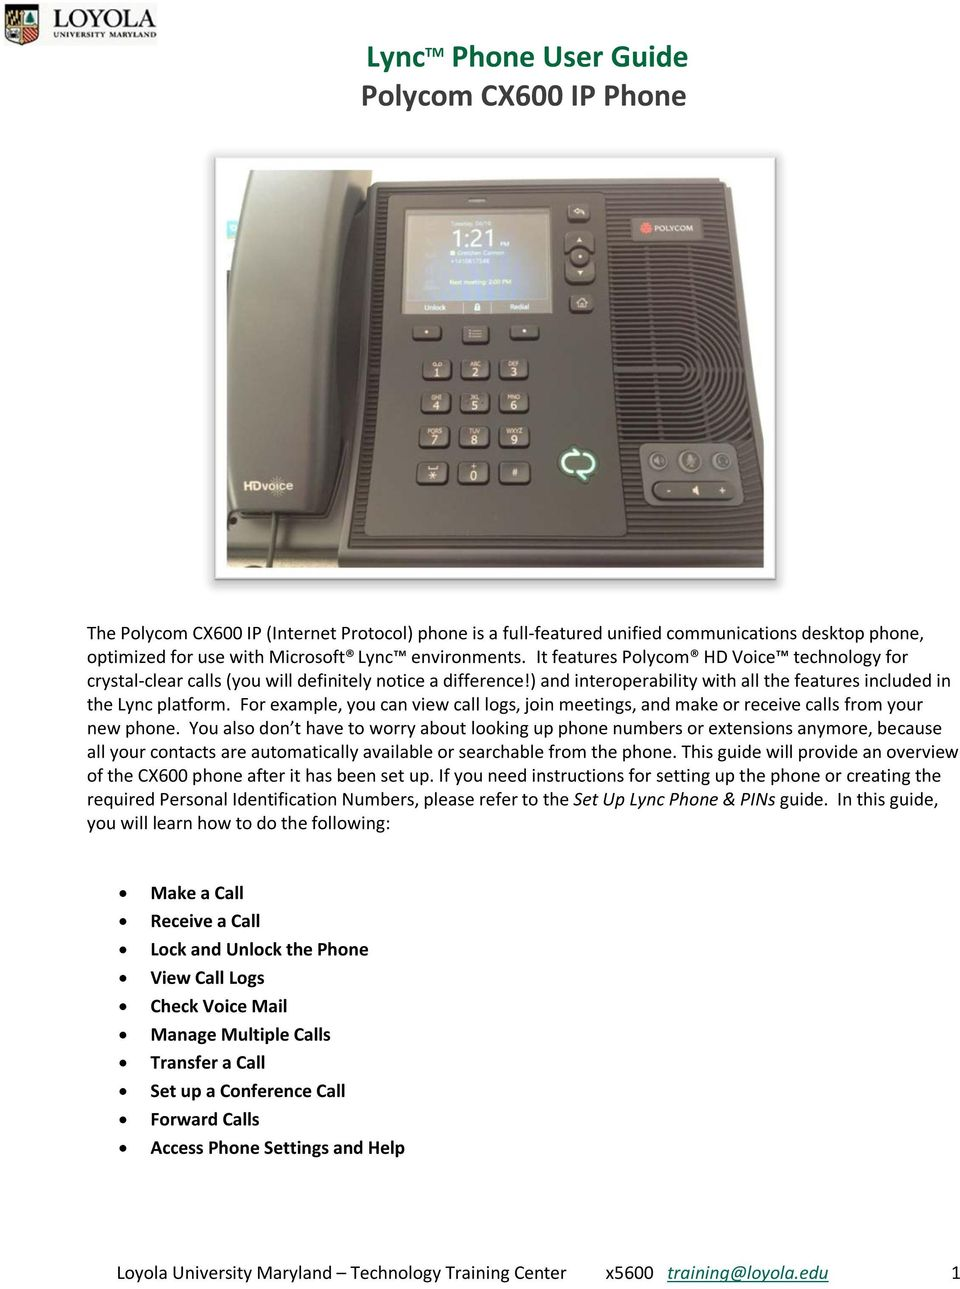 lync tm phone user guide polycom cx600 ip phone pdf rh docplayer net Polycom CX5500 Polycom CX5500